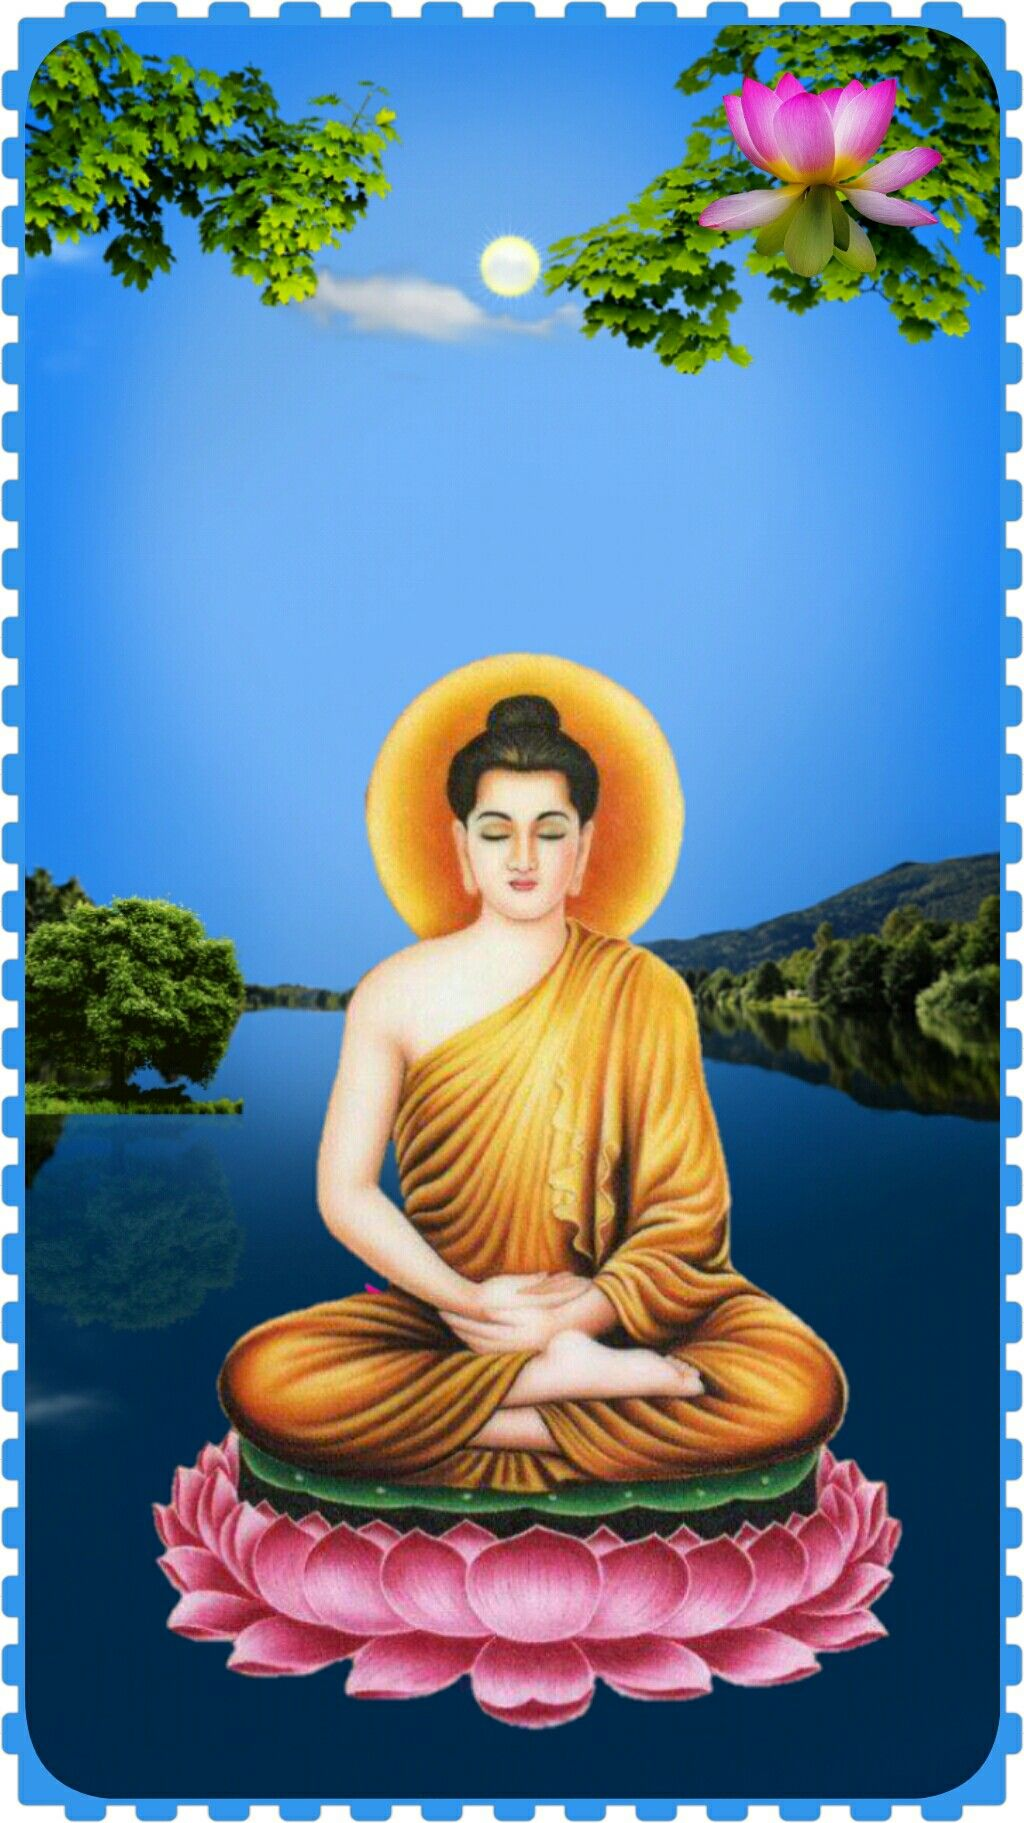 The Buddha Considered The Practice Of Skillful Speech So Essential